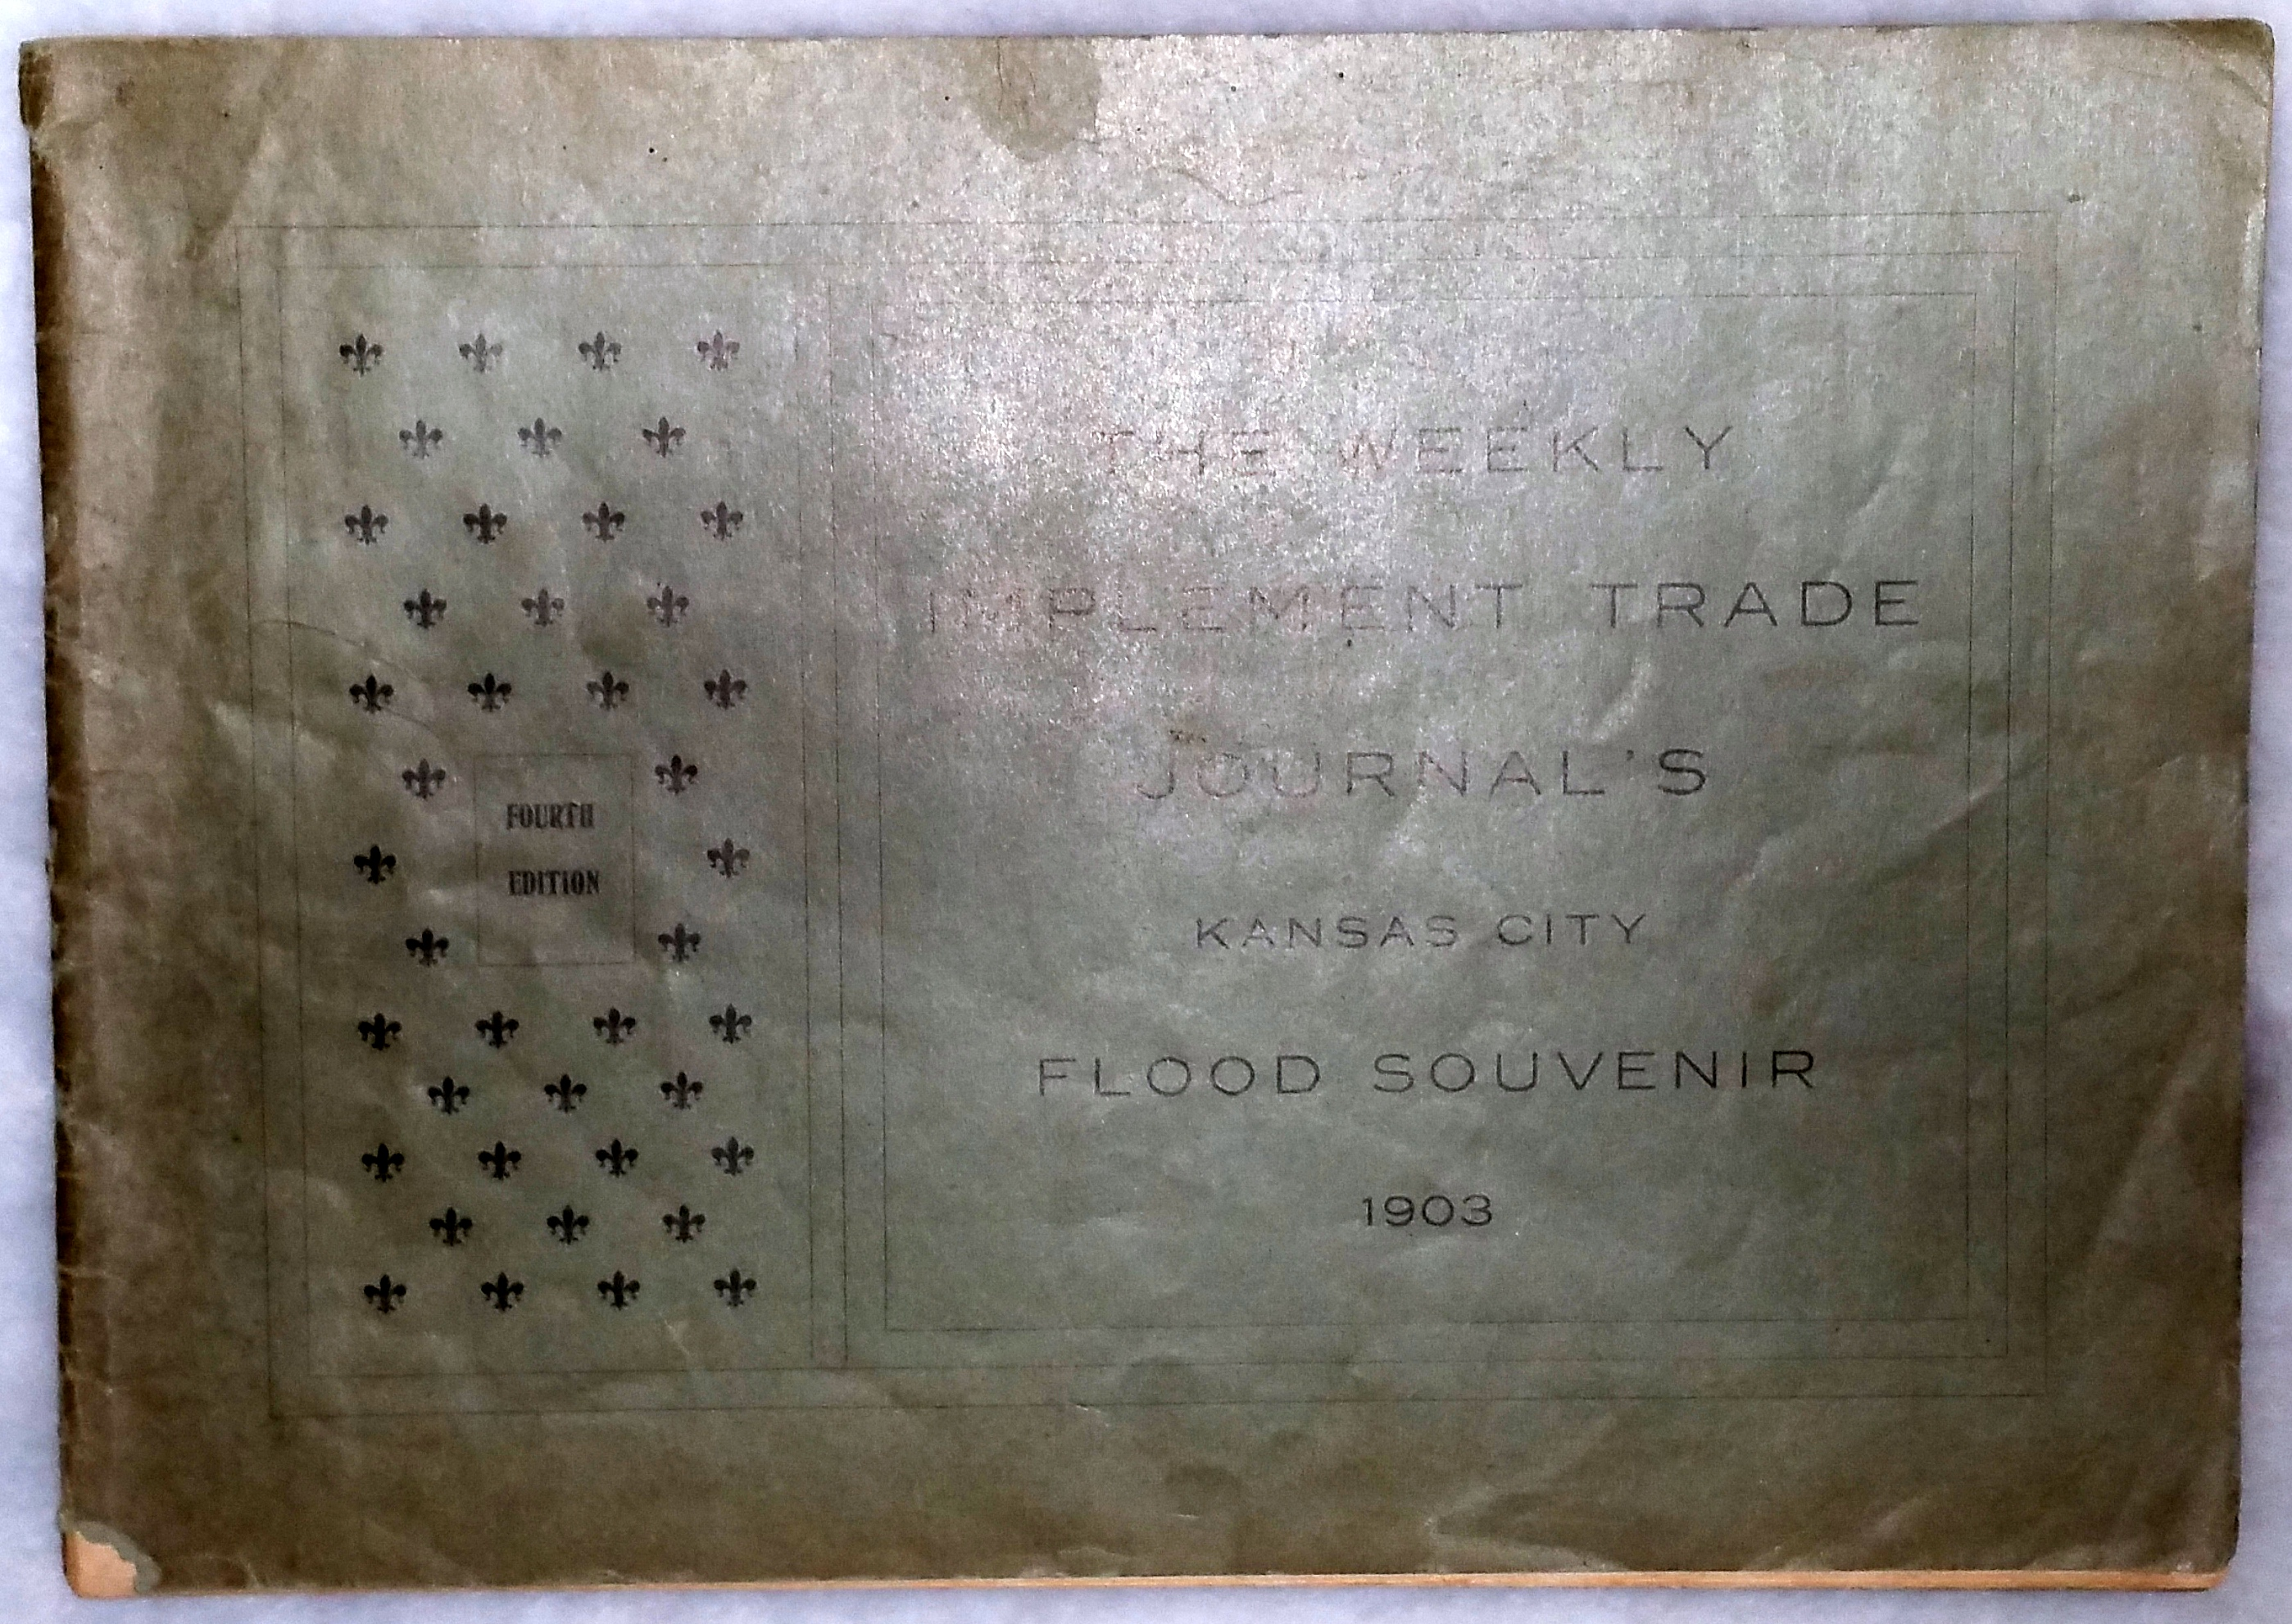 Image for The Weekly Implement Trade Journal's Kansas City Flood Souvenir, 1903